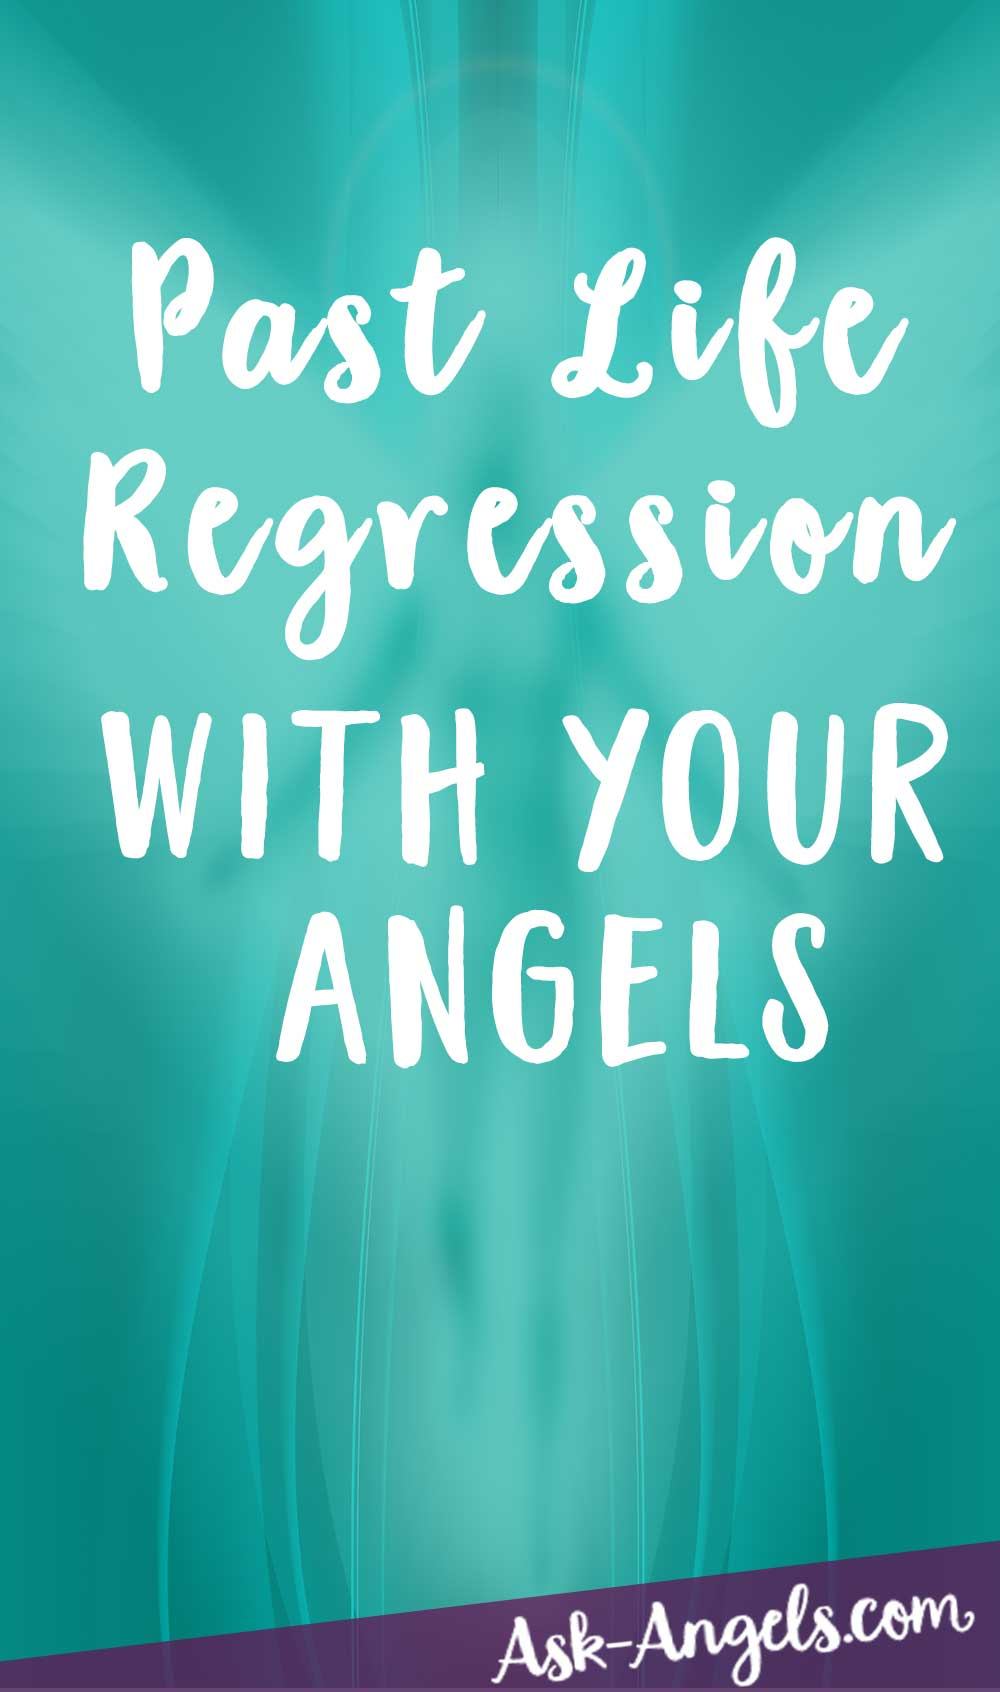 Past Life Regression with Your Angels